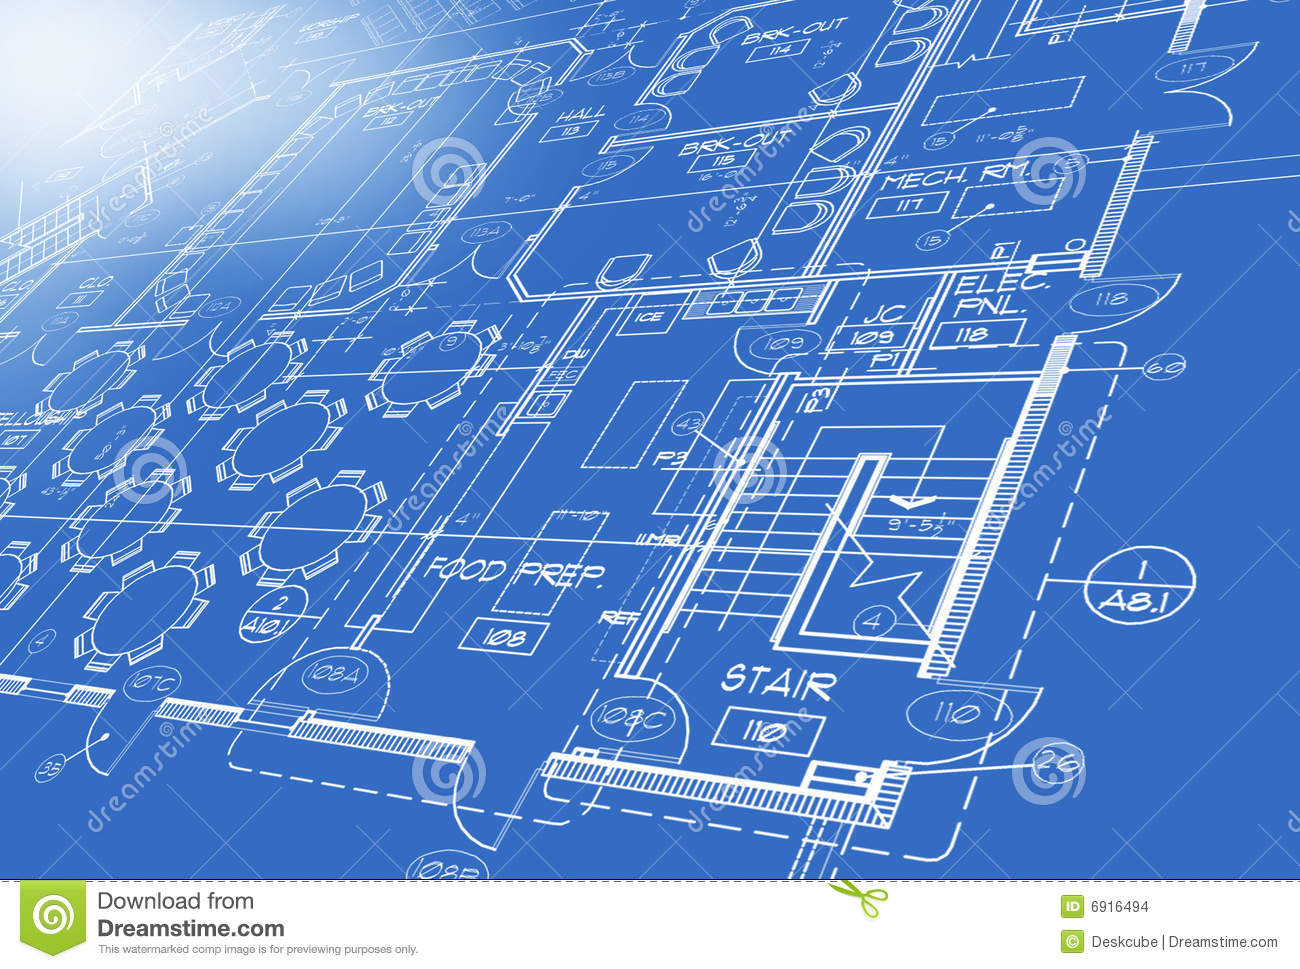 Blue print plan showing stairs tables chairs